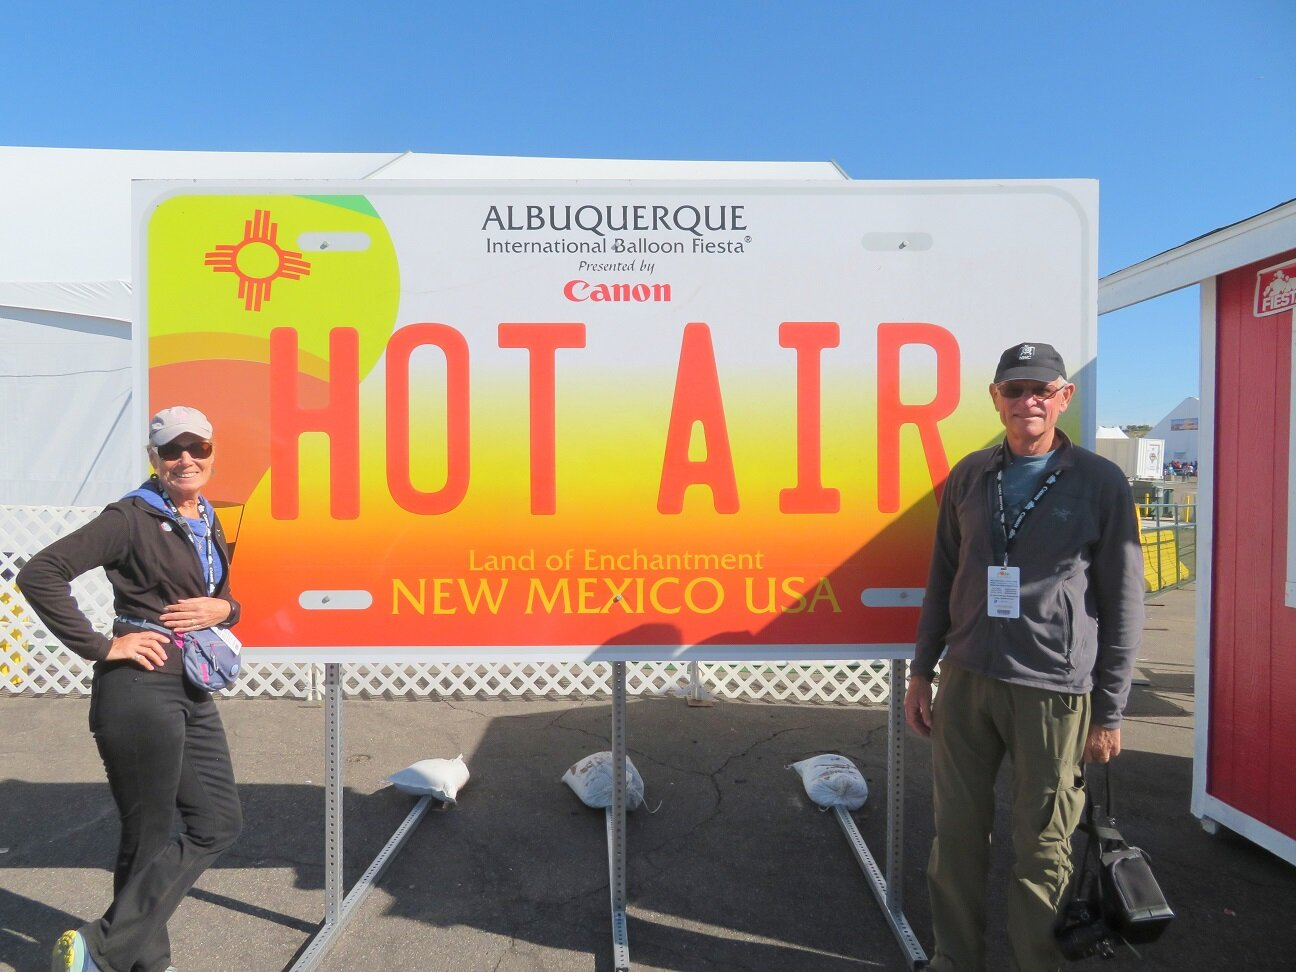 Welcome to the Albuquerque International Balloon Fiesta —- Photo credit: Eric Anderson